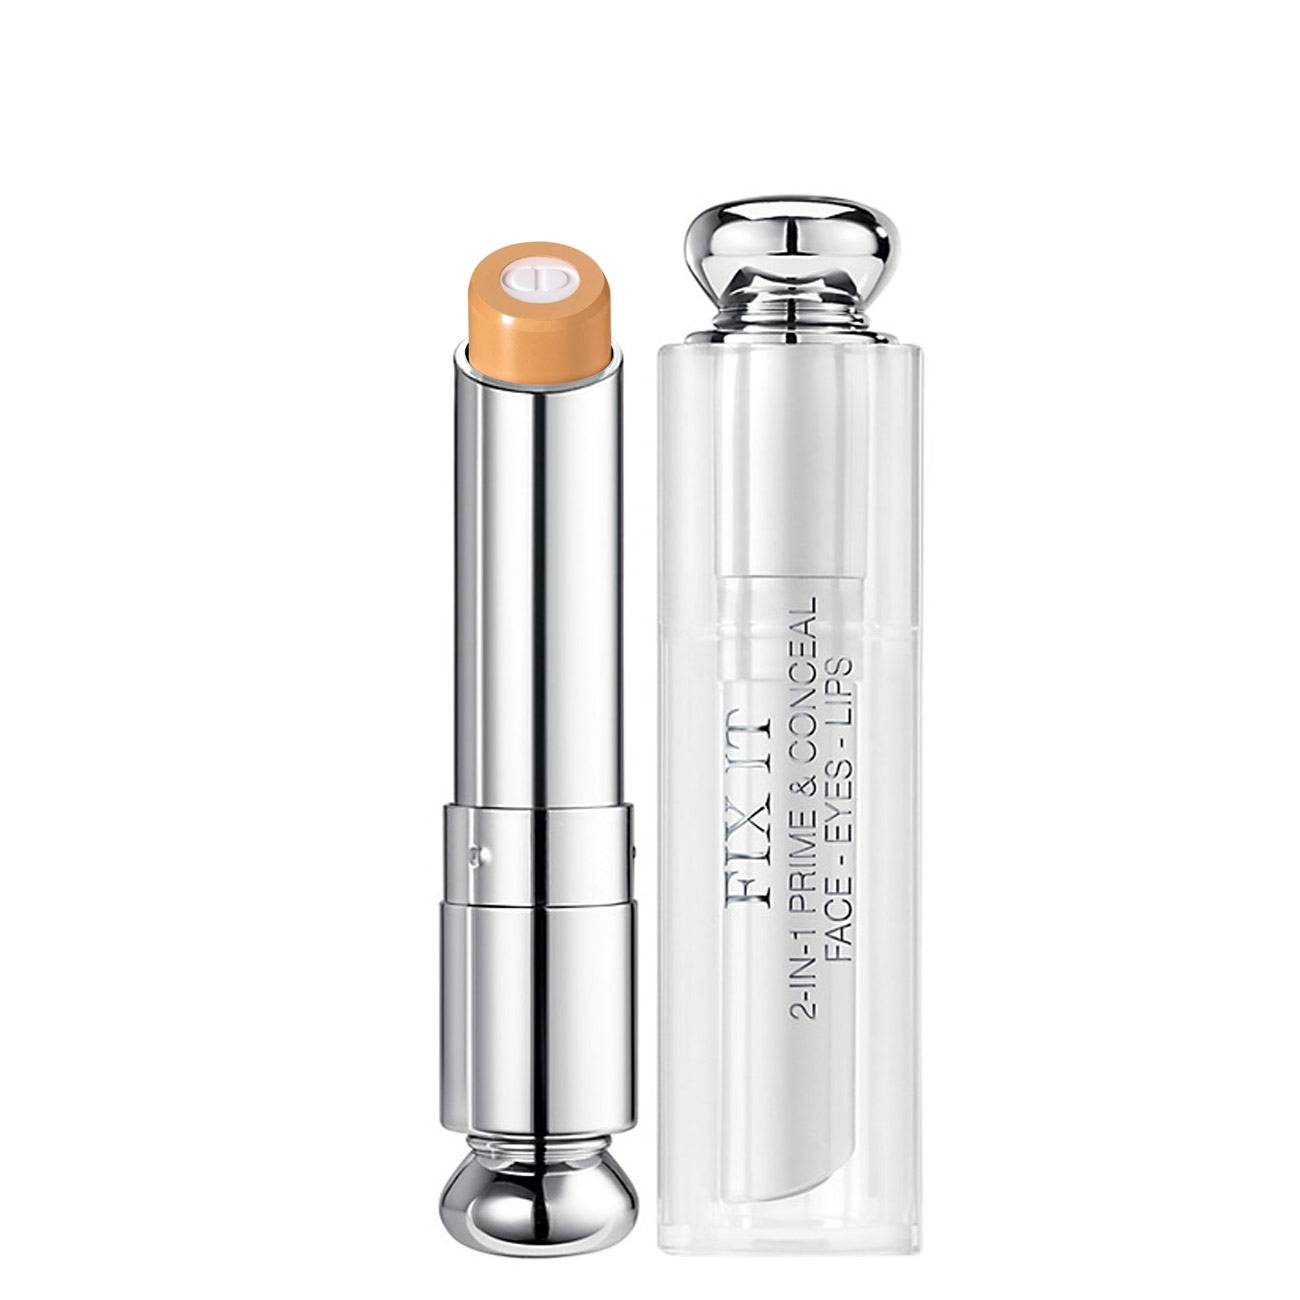 Fix It 003 3.5 Grame Dior imagine 2021 bestvalue.eu